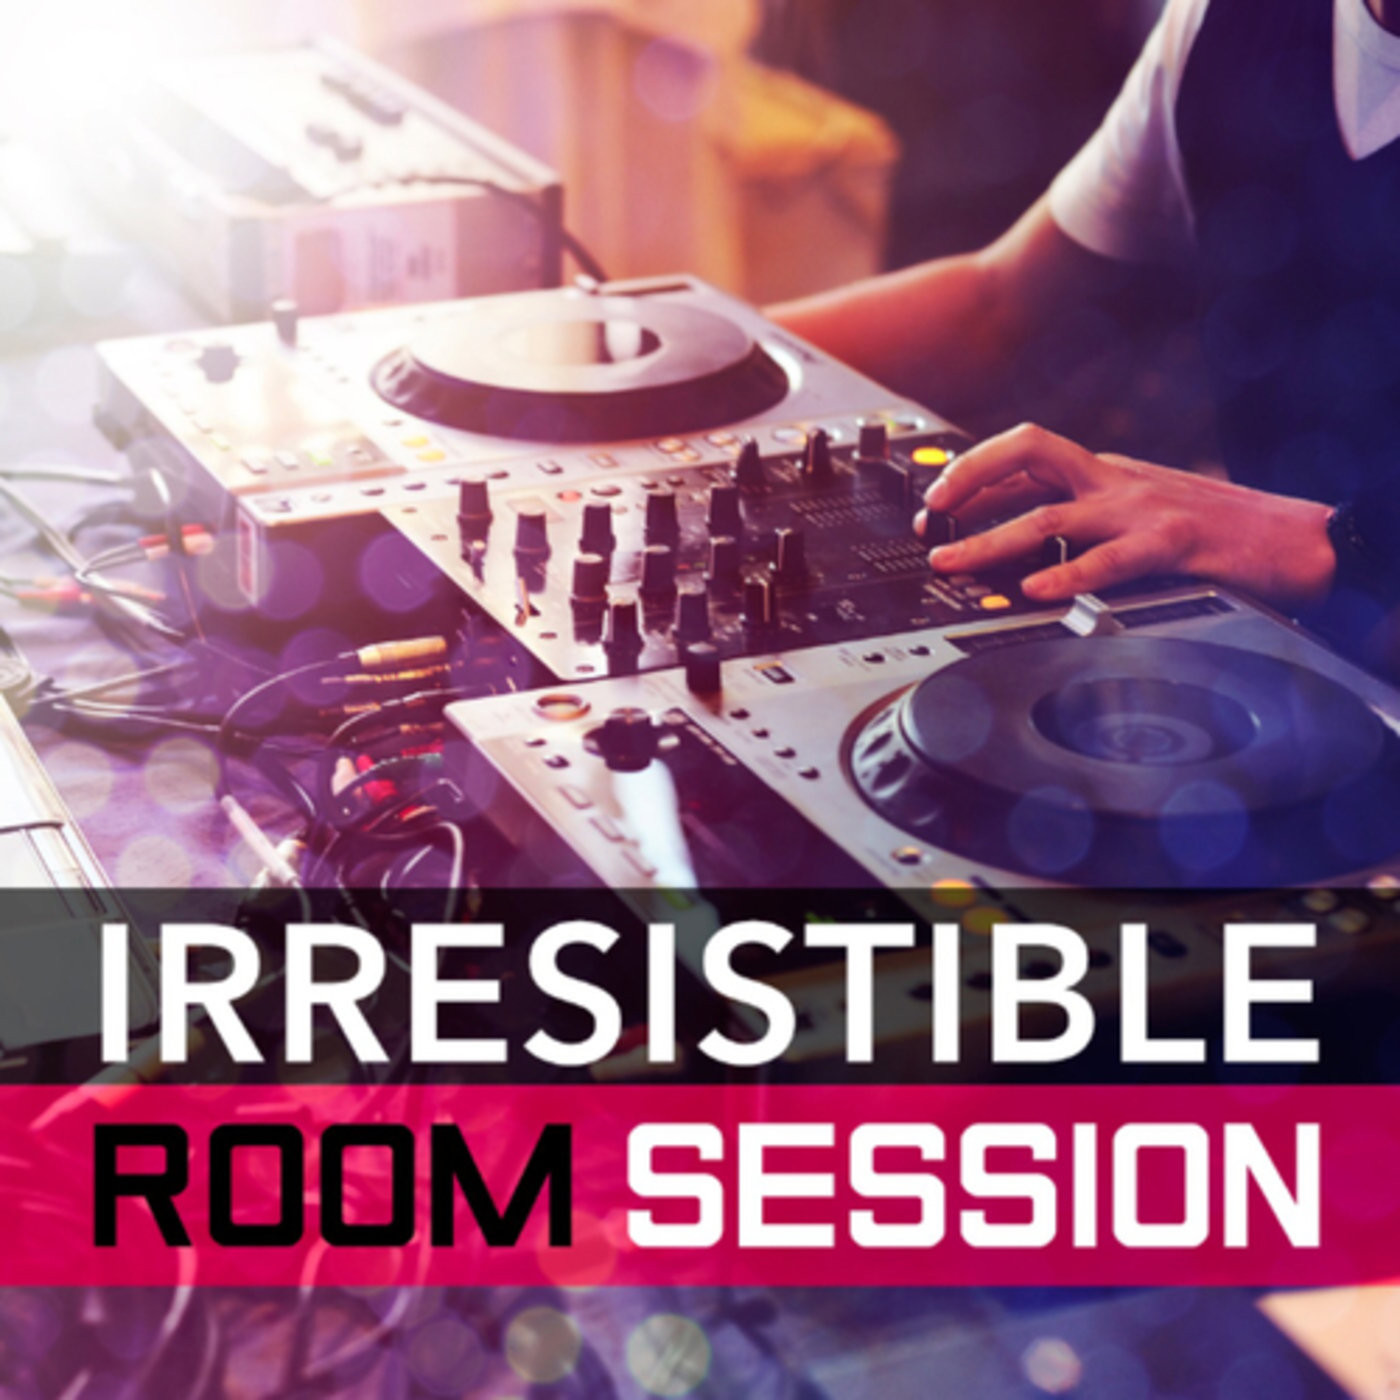 <![CDATA[Irresistible Room | Session]]>